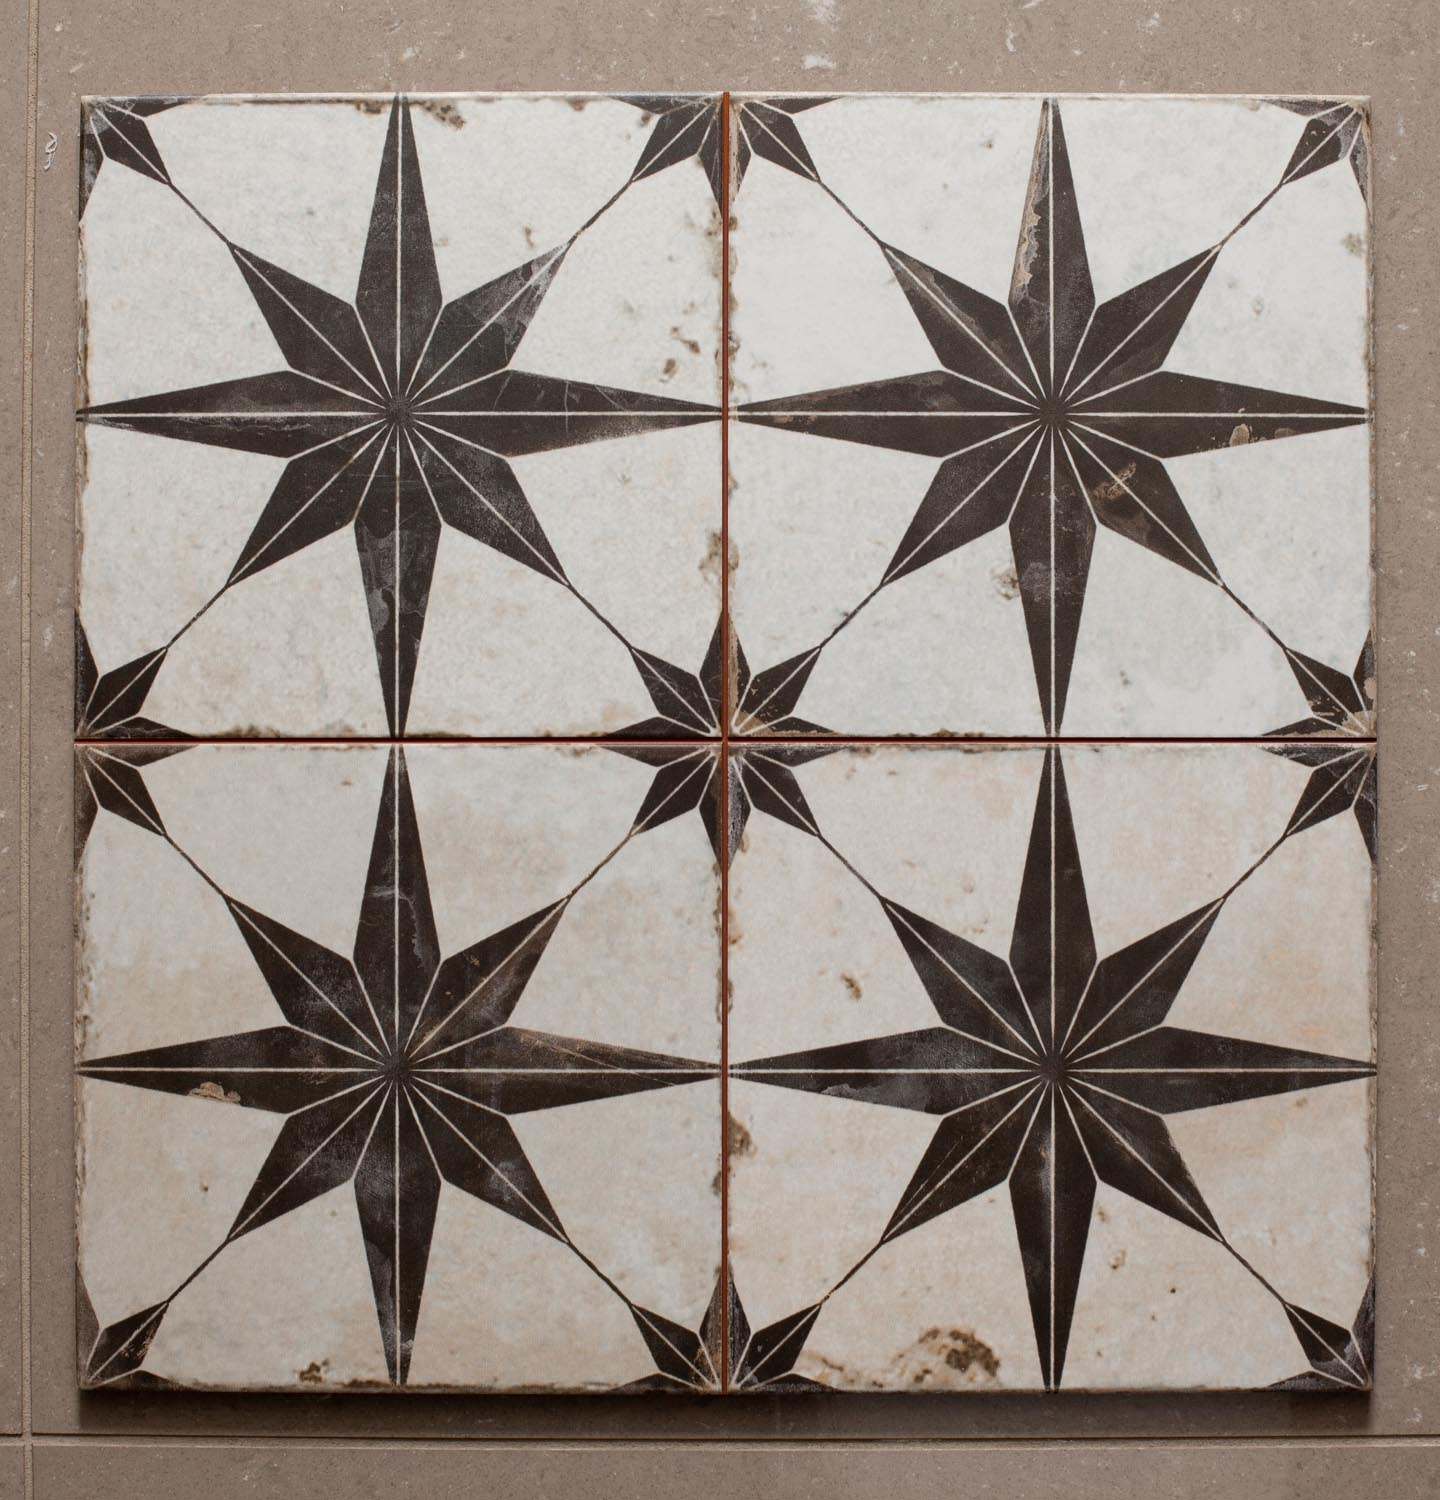 Ca'Pietra Spitafields Retro Star pattern tiles